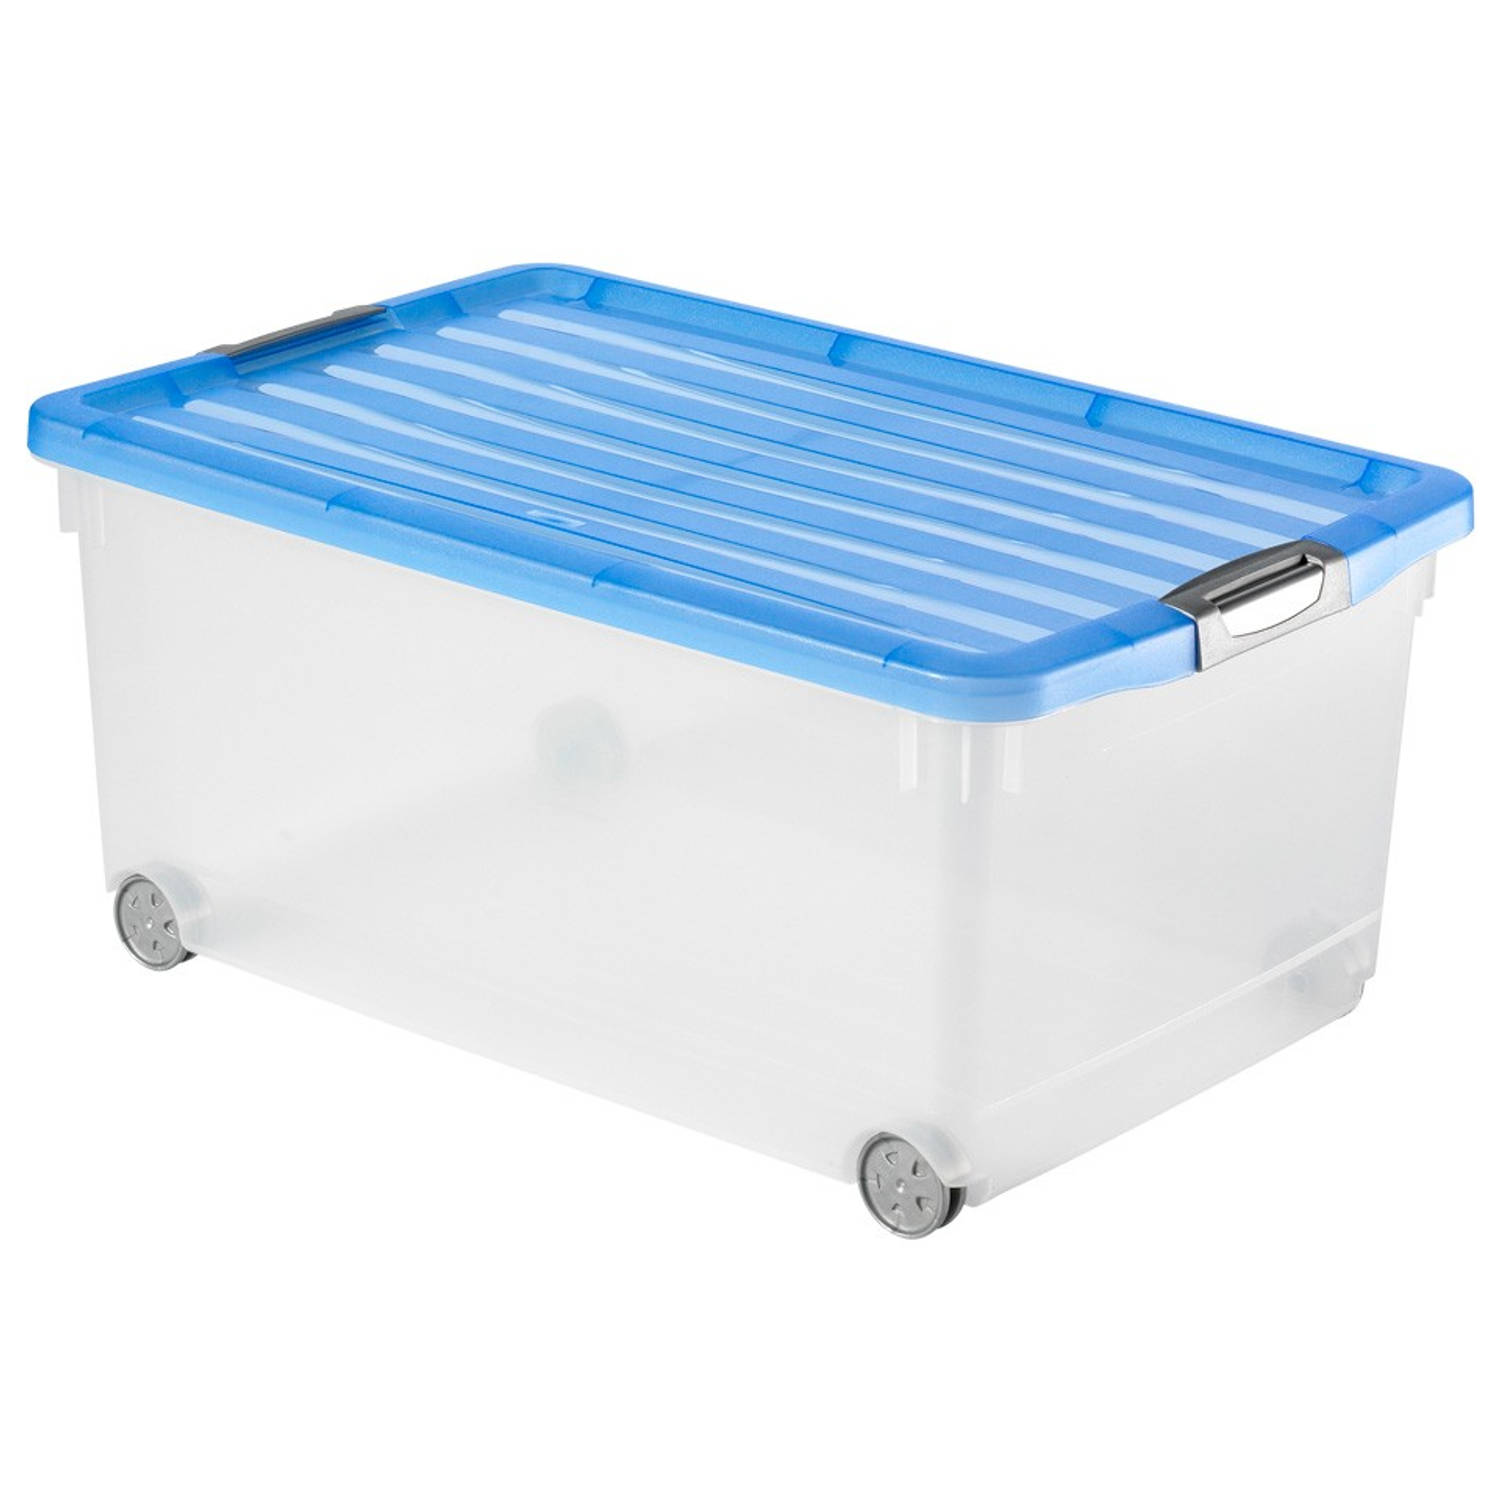 Curver Click'n Fit opbergbox 45 liter - blauw